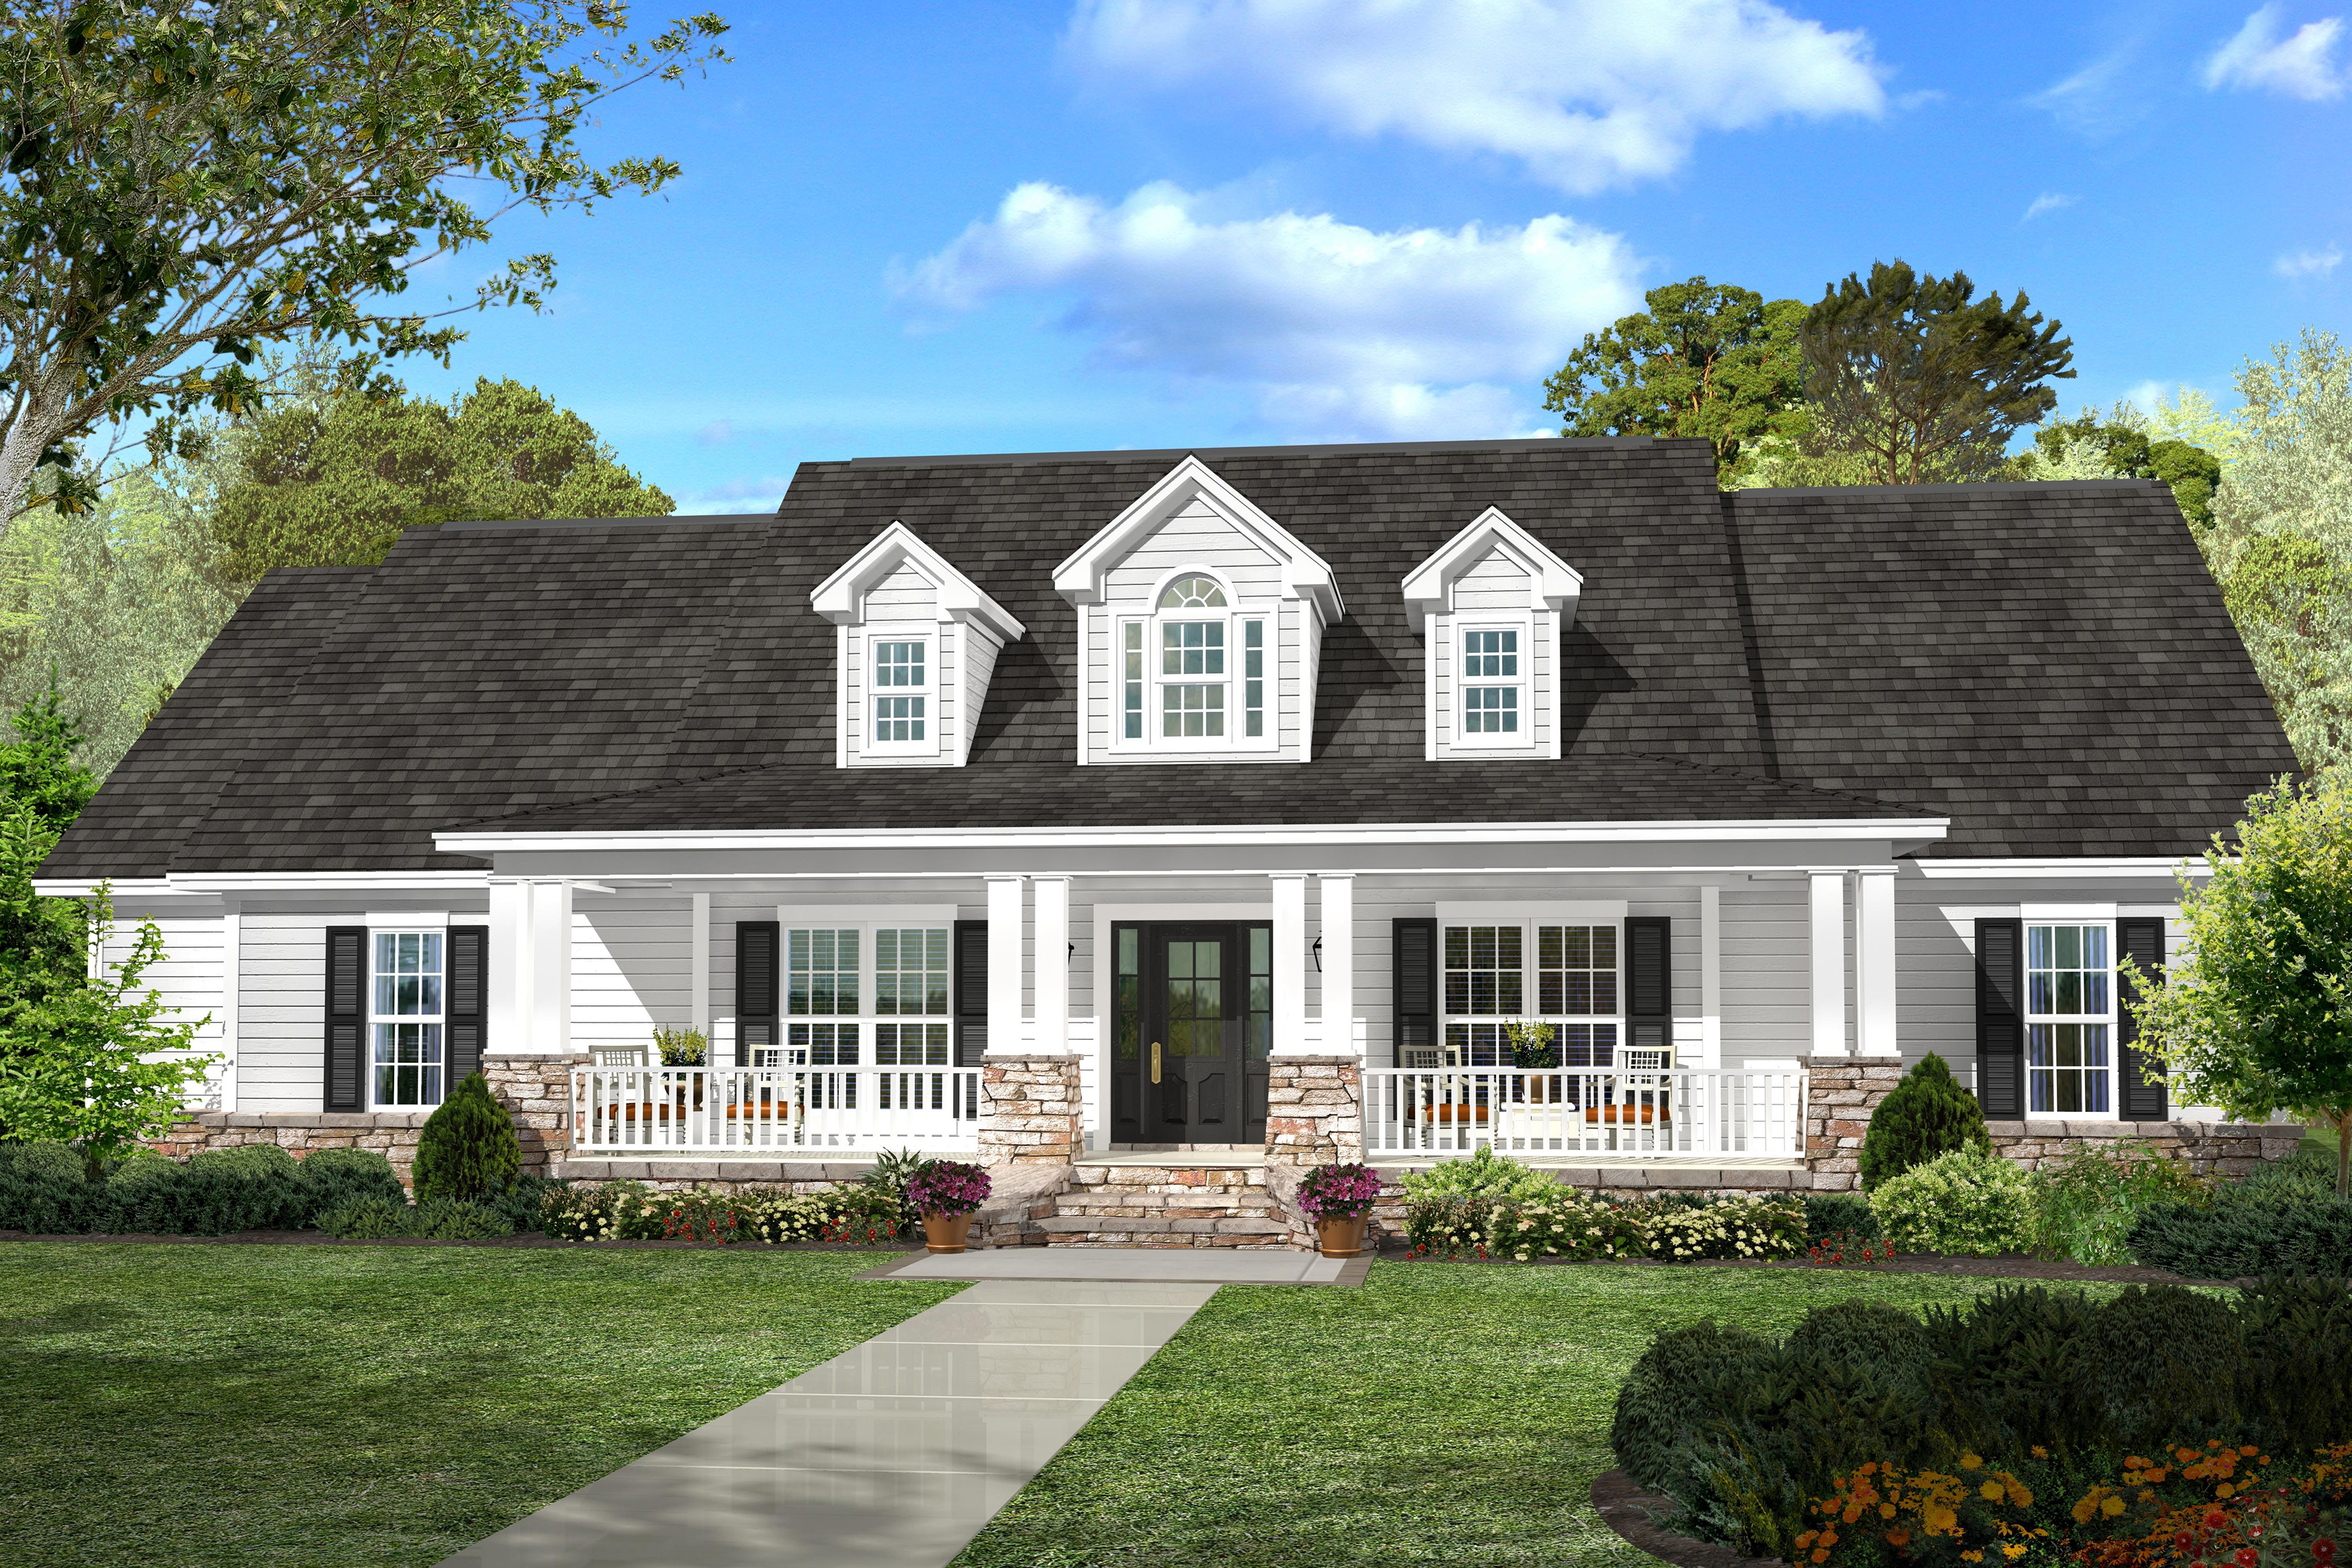 Country house plan 142 1131 4 bedrm 2420 sq ft home Farmhouse plans